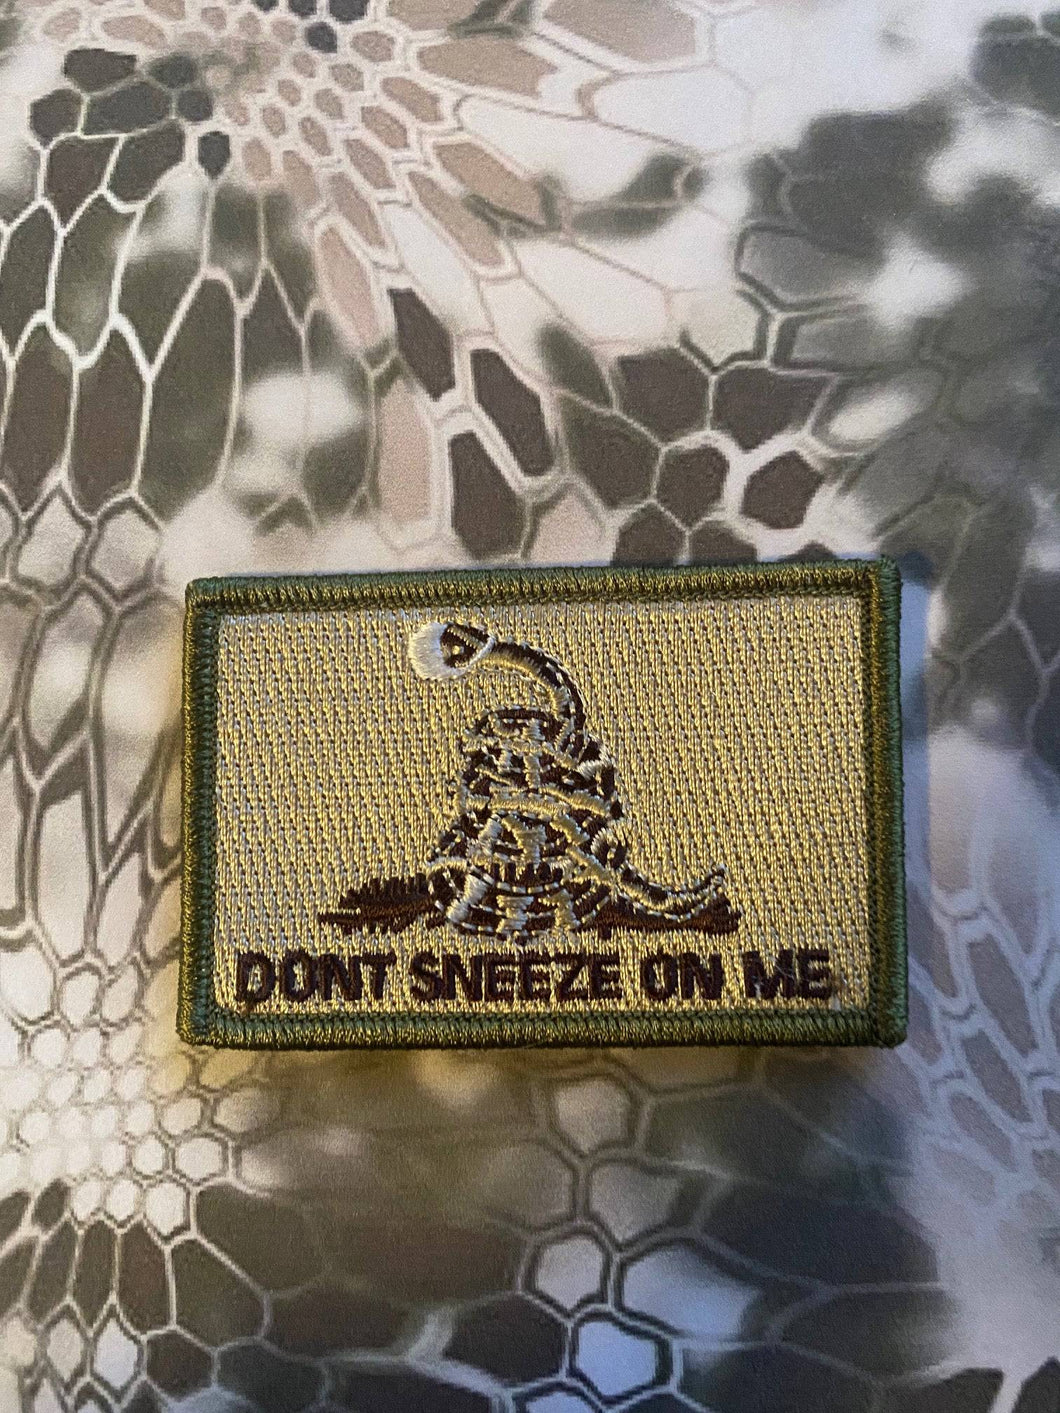 BuckUp Tactical Morale Patch Hook Dont Sneeze On Me Cornavirus Covid Face Mask n95 Patches 3x2